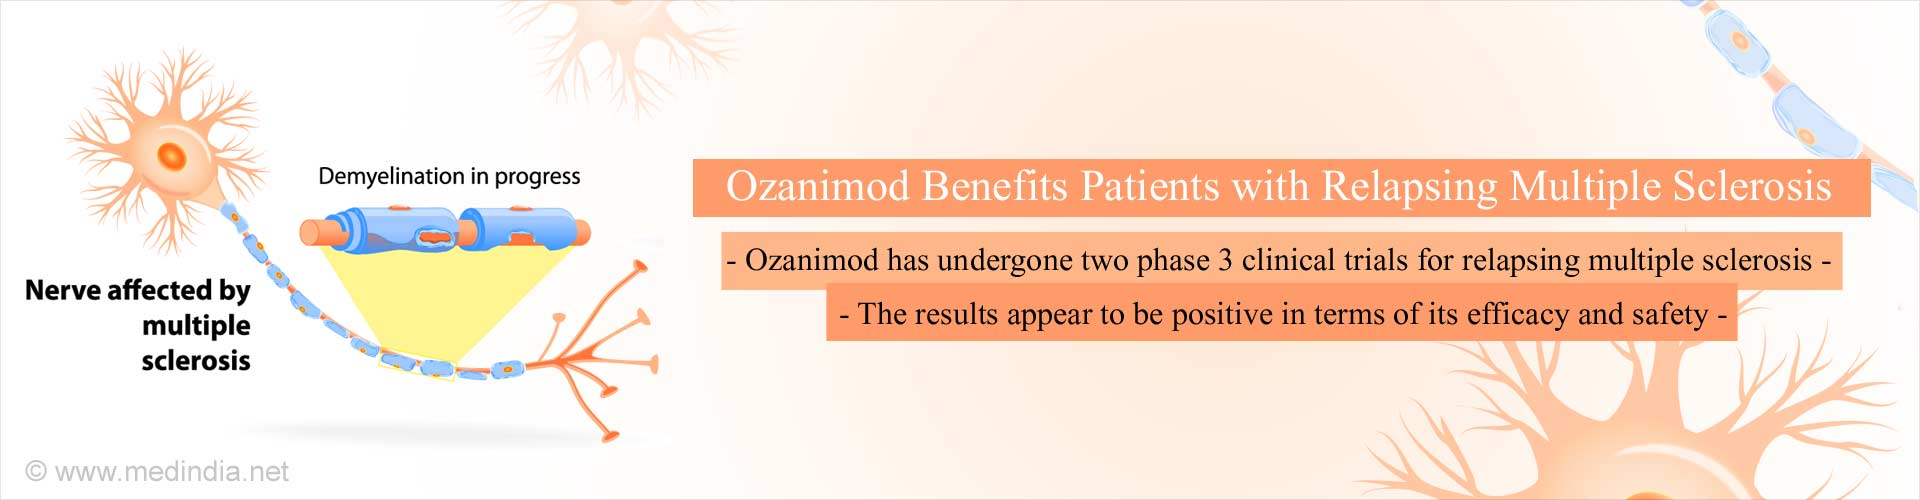 Ozanimod Shows Positive Response in Relapsing Multiple Sclerosis in Two Clinical